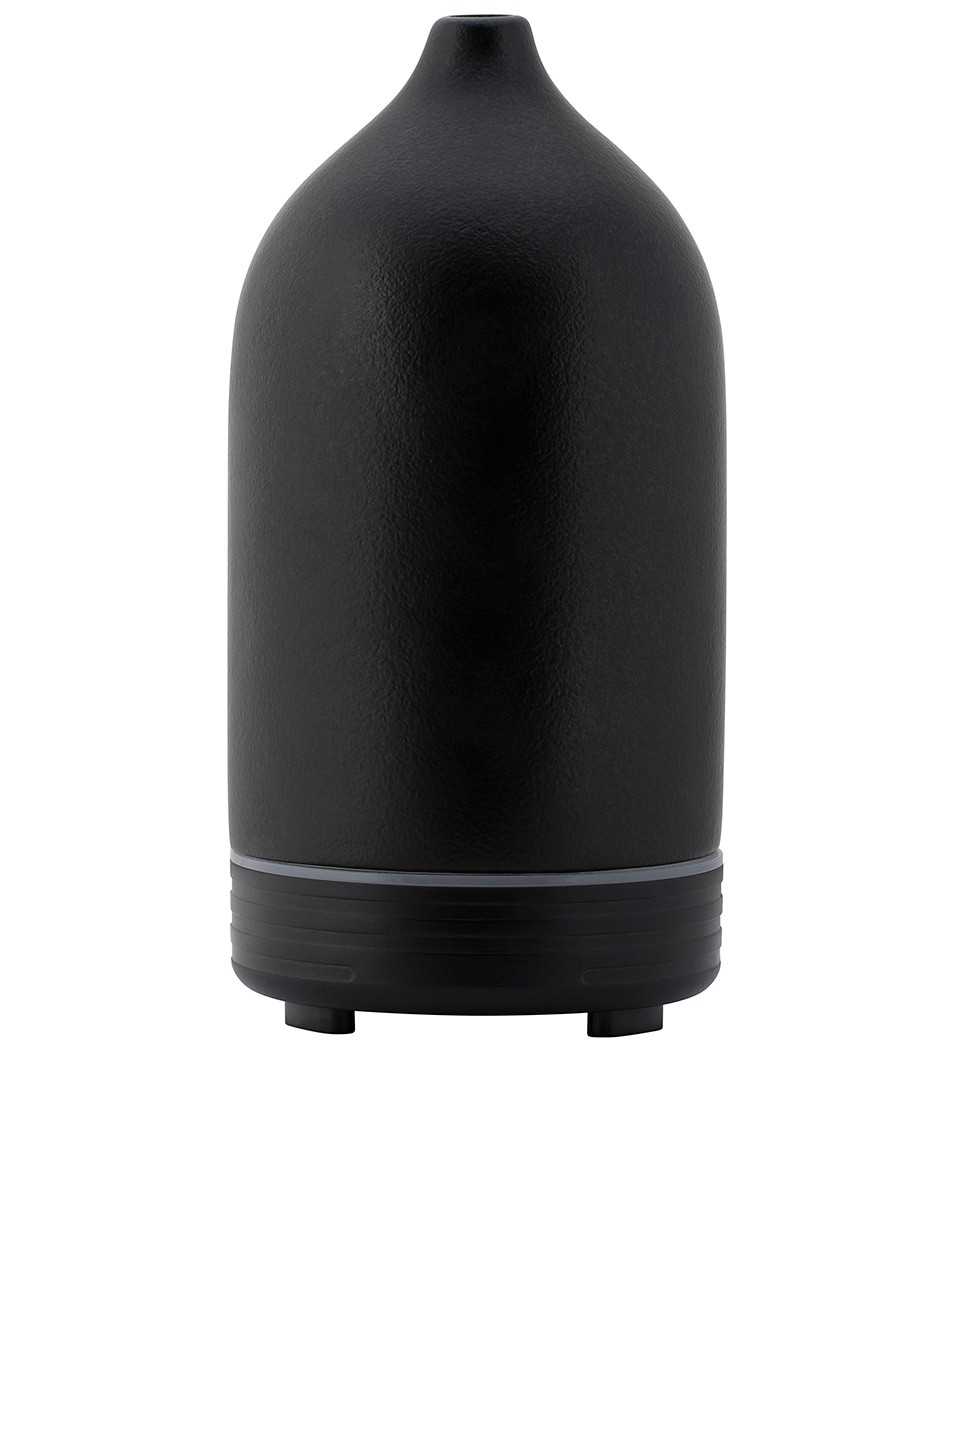 Ceramic Ultrasonic Essential Oil Diffuser